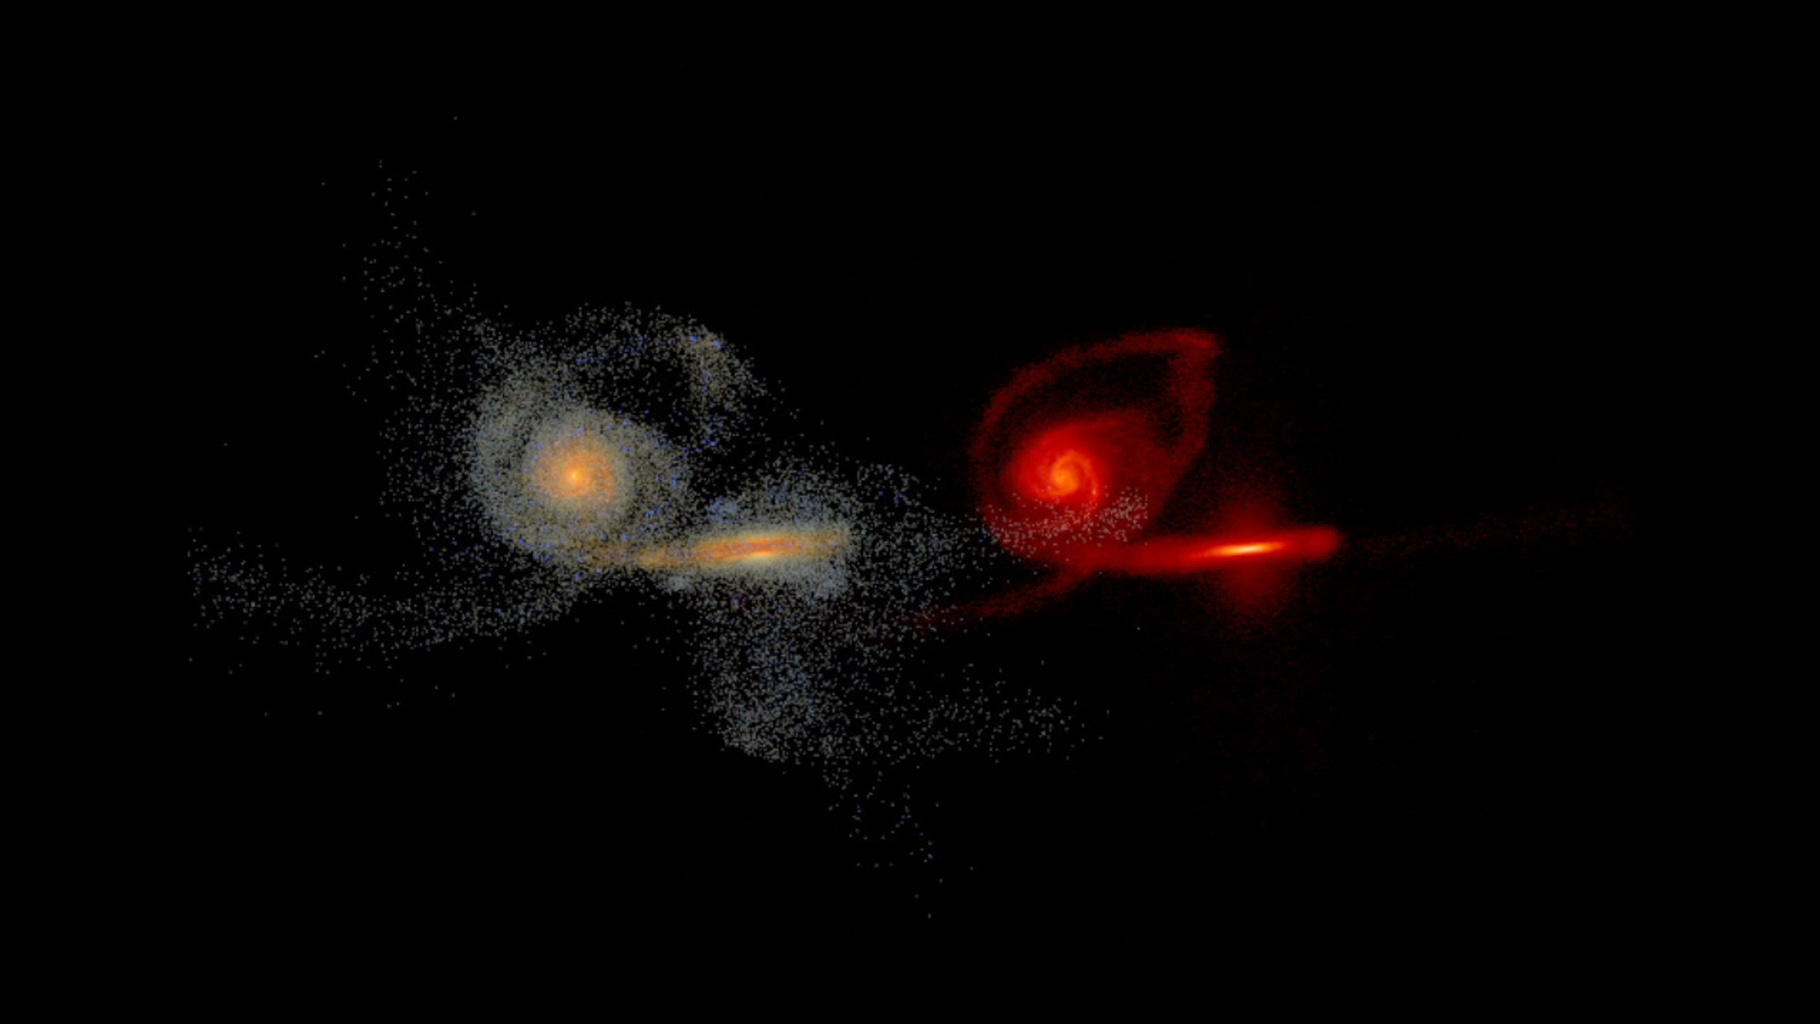 This frame from a simulation shows the merging of two massive galaxies. The merging galaxies are split into two views: a visible-light view on the left, and infrared view on the right.